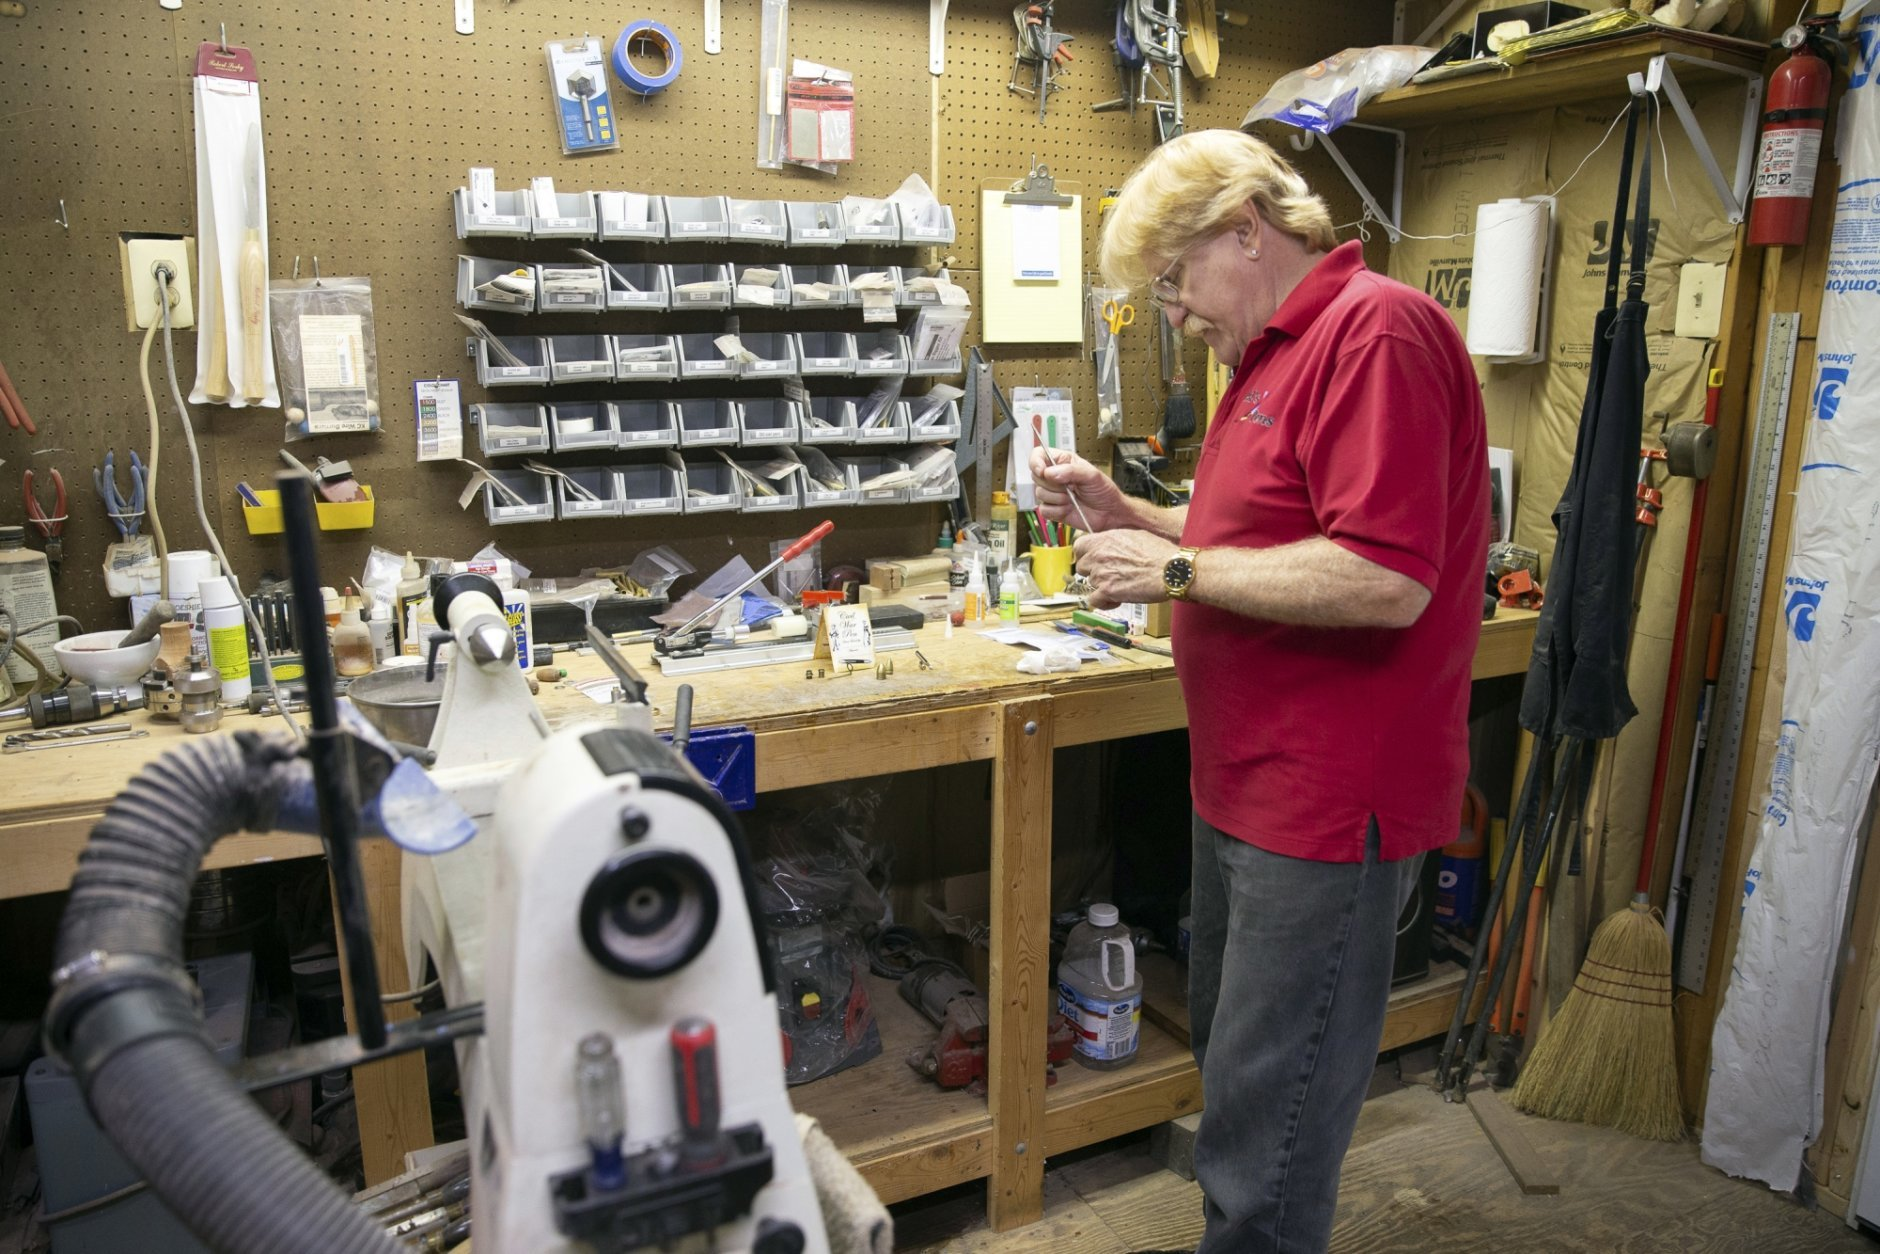 Ed Seyfried, owner of Ed's Pens, works on a pen at his home in King George, Va. on Sept. 20, 2018. Seyfried uses materials including wood, acrylic, metal, horn and bone to make the pens.  (Mike Morones/The Free Lance-Star via AP)